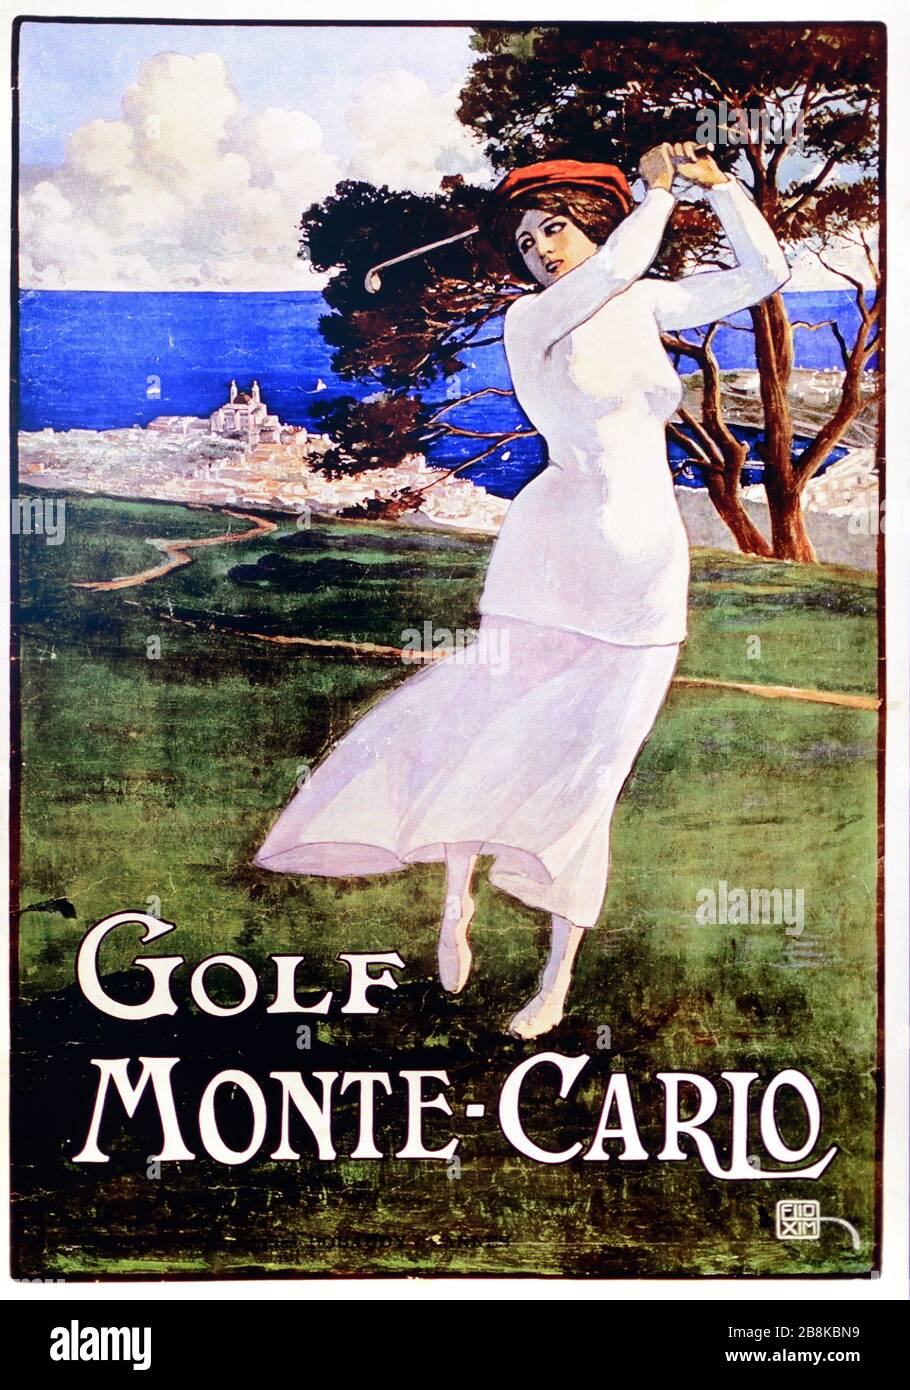 https www alamy com female golfer in vintage golf advert monte carlo golf course monaco vintage advert illustration or old poster from 1920s image349550917 html